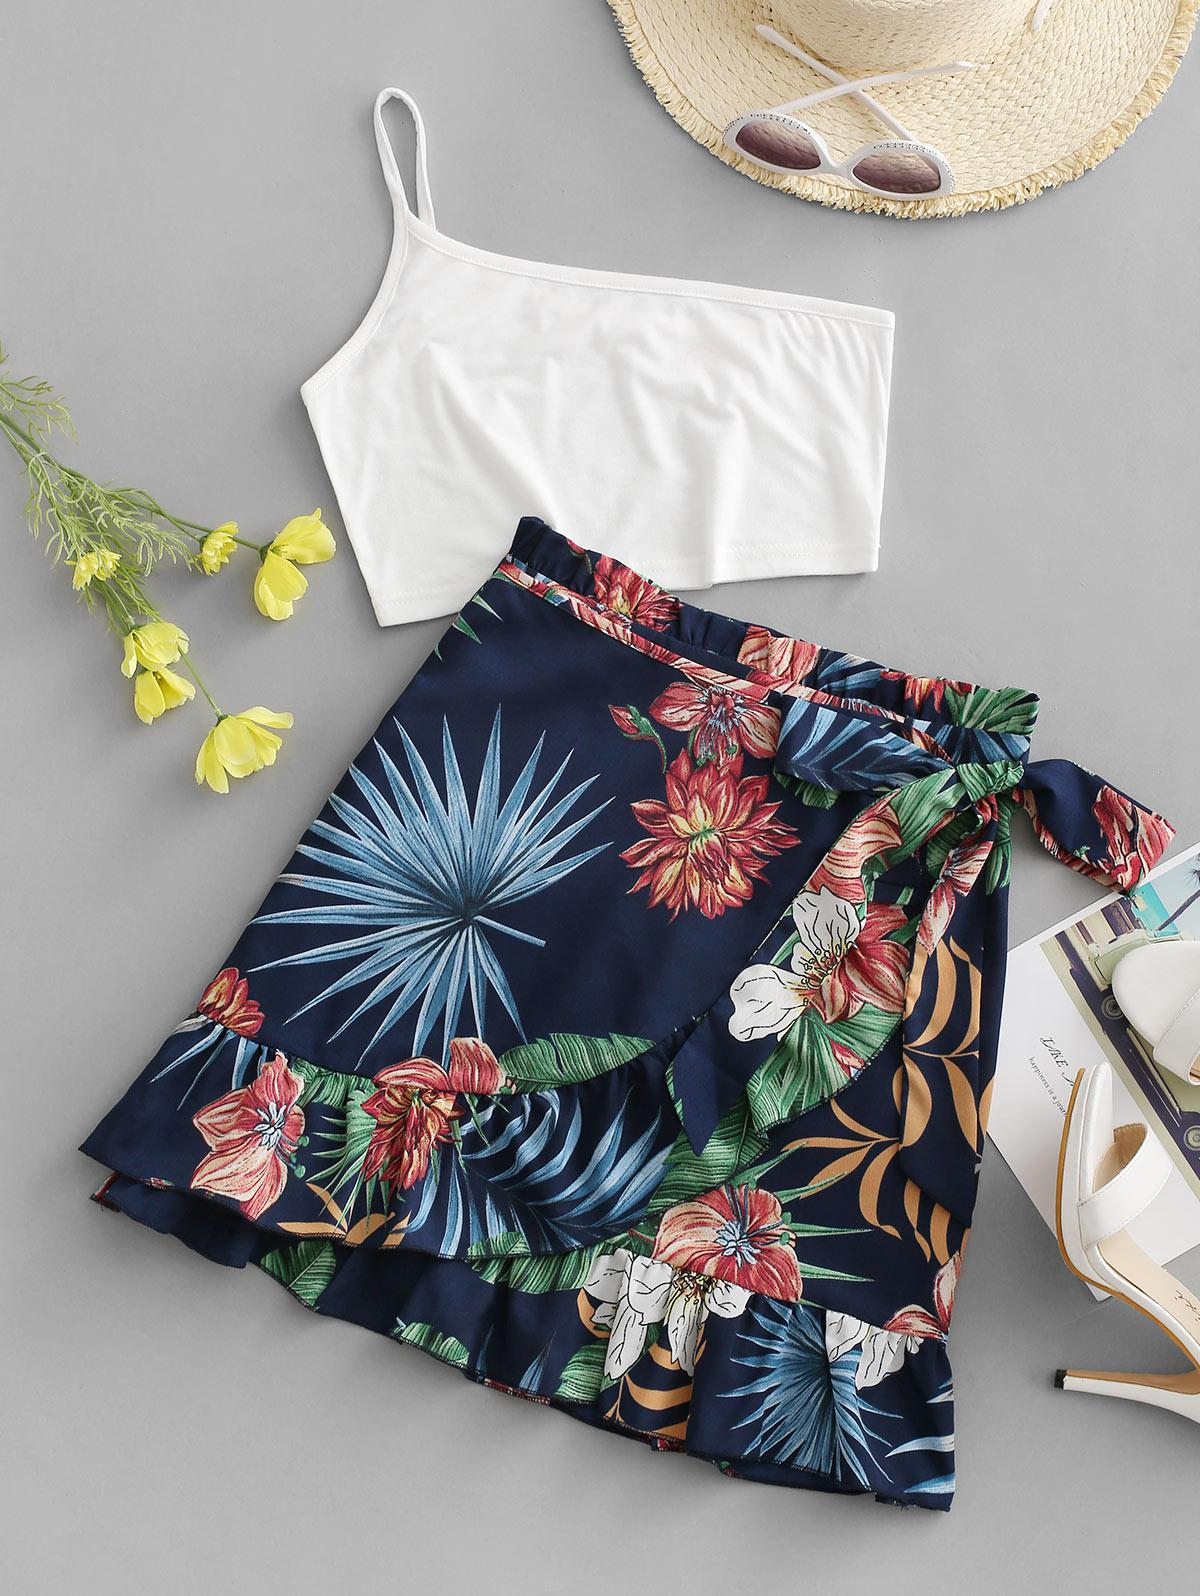 ZAFUL One Shoulder Flower Leaf Flounce Two Piece Set thumbnail